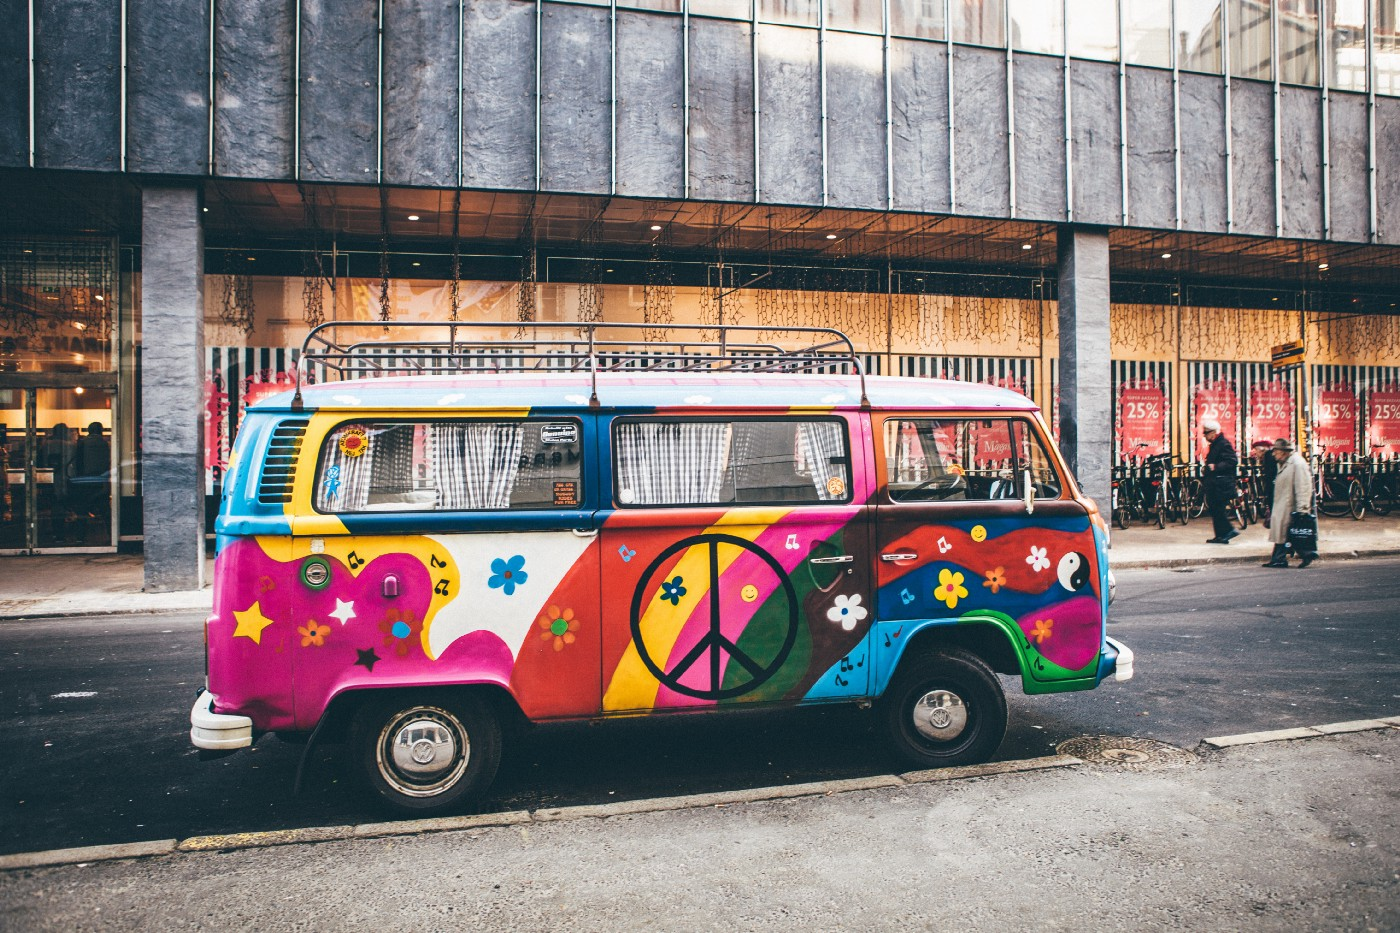 A colorful van with a peace symbol